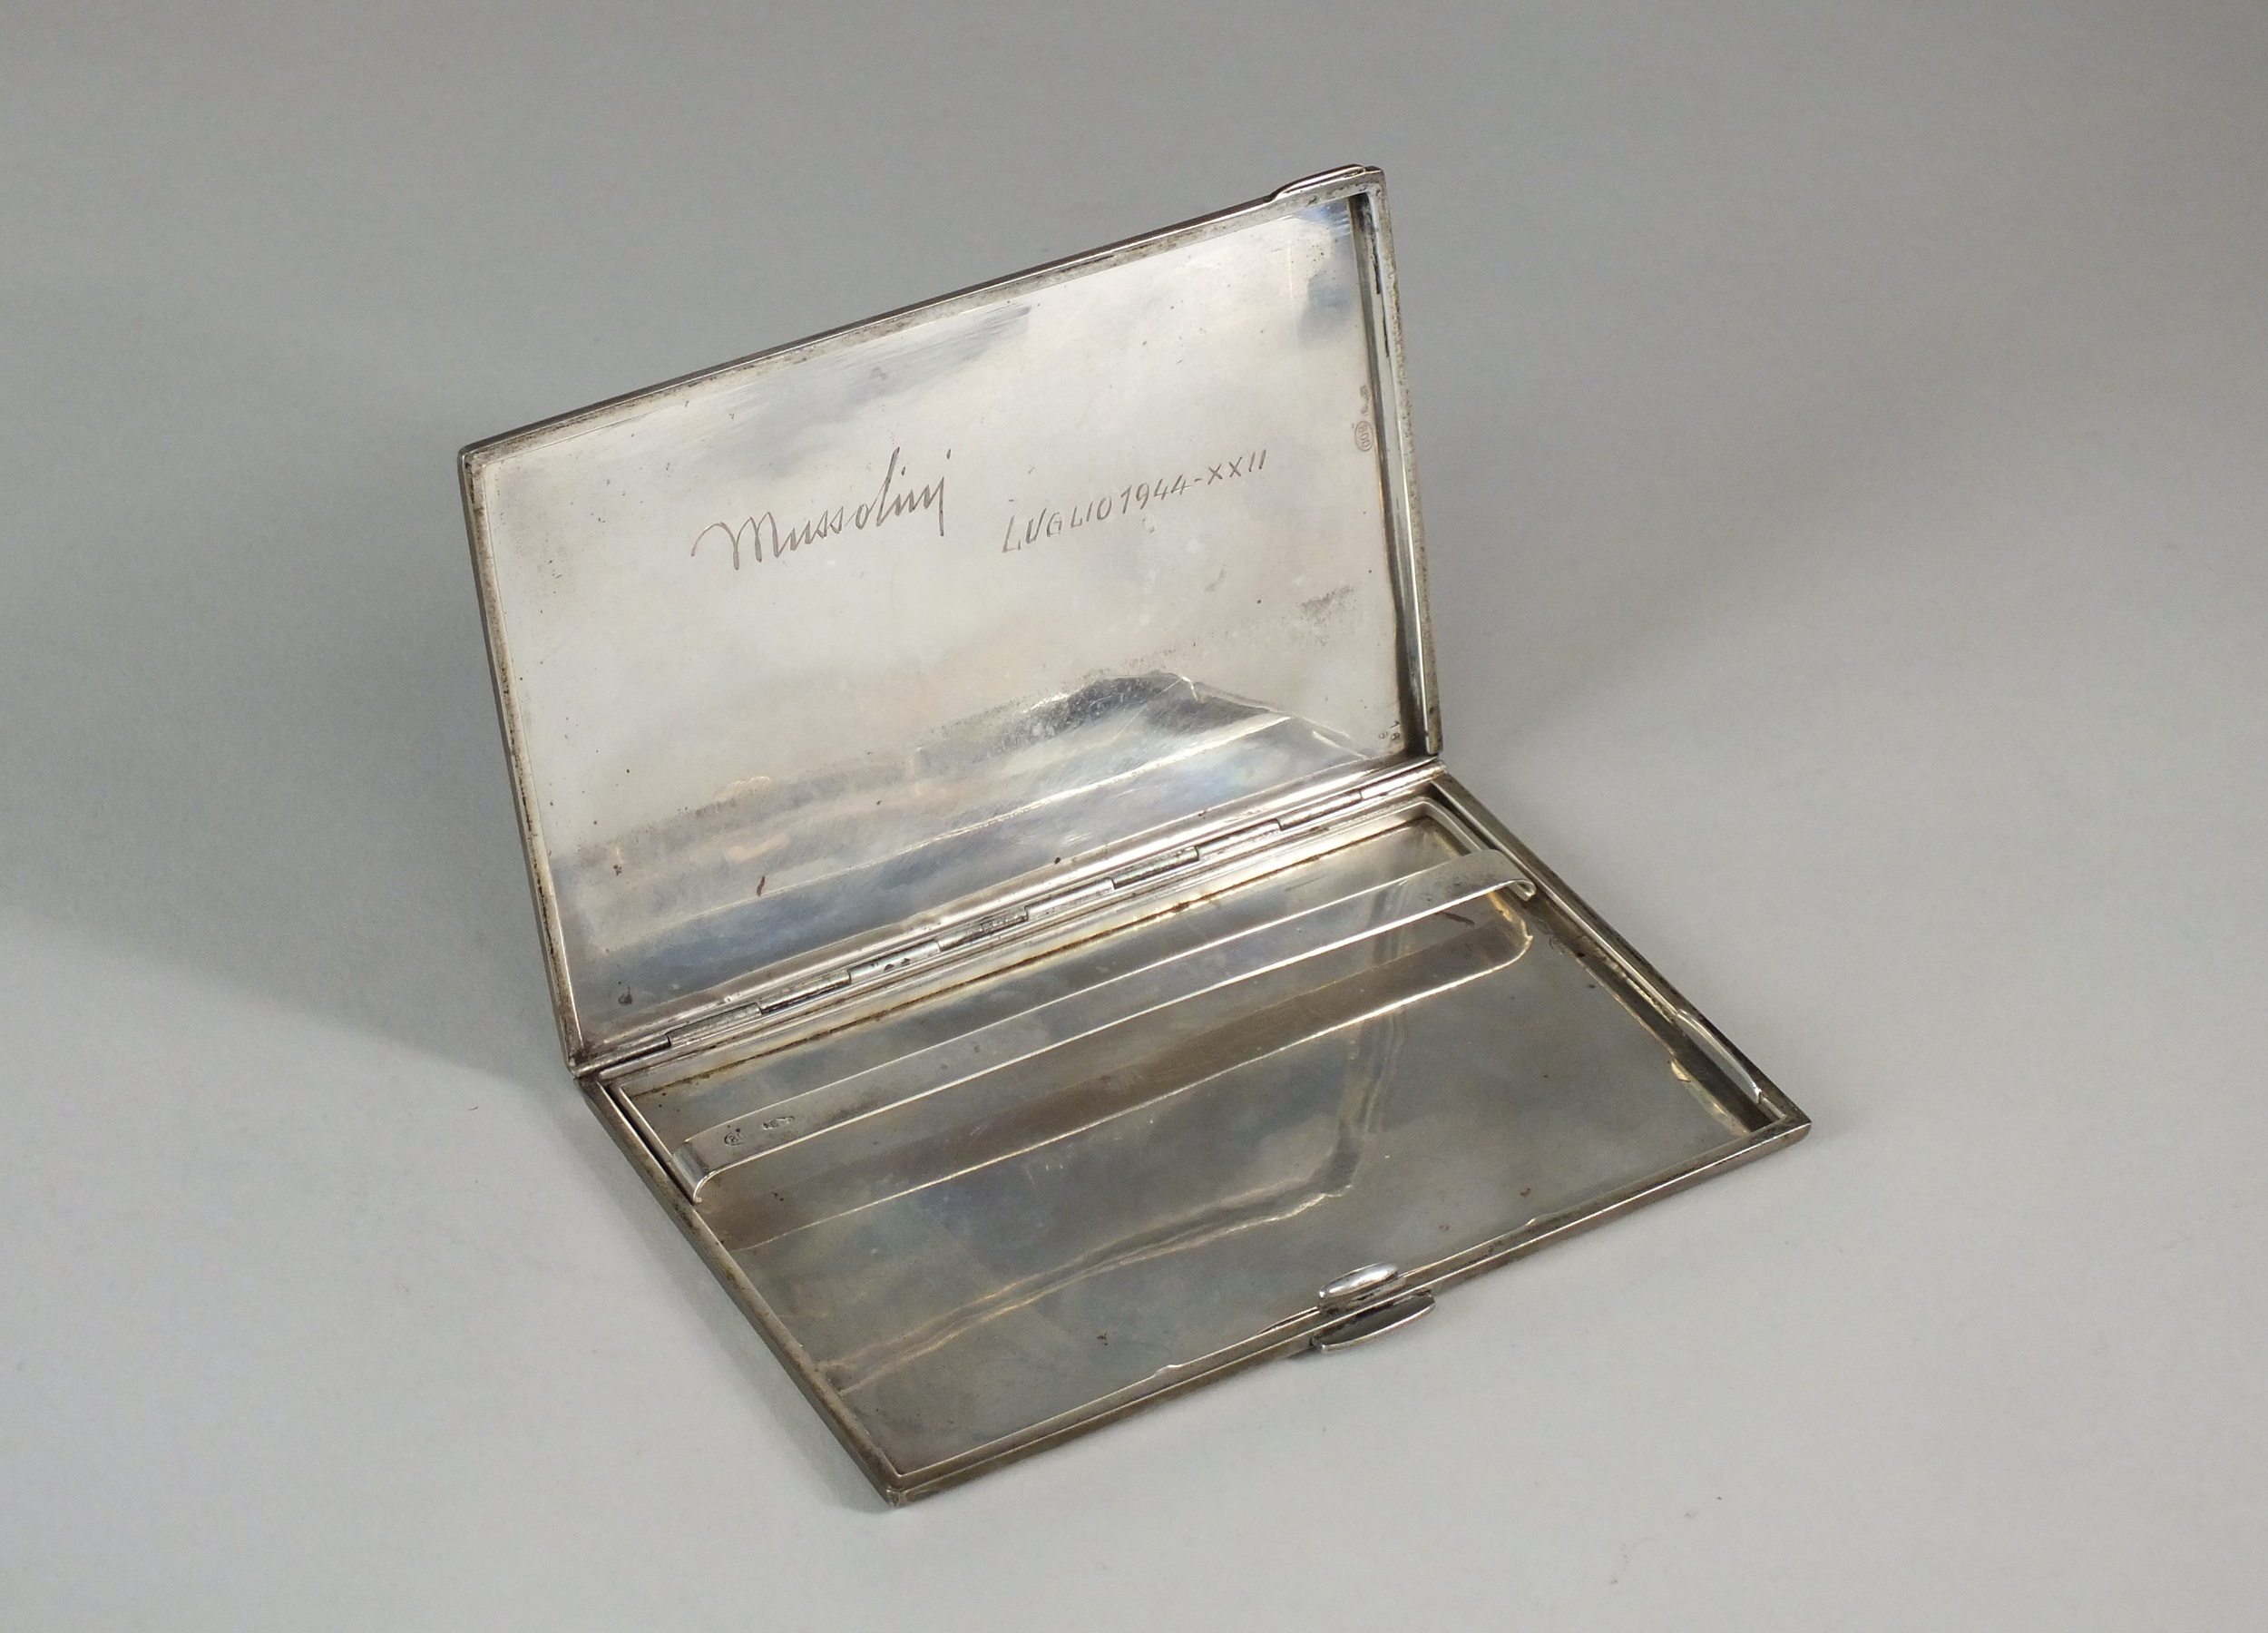 Italian cigarette case owned by Mussolini - signature Halls Fine Art